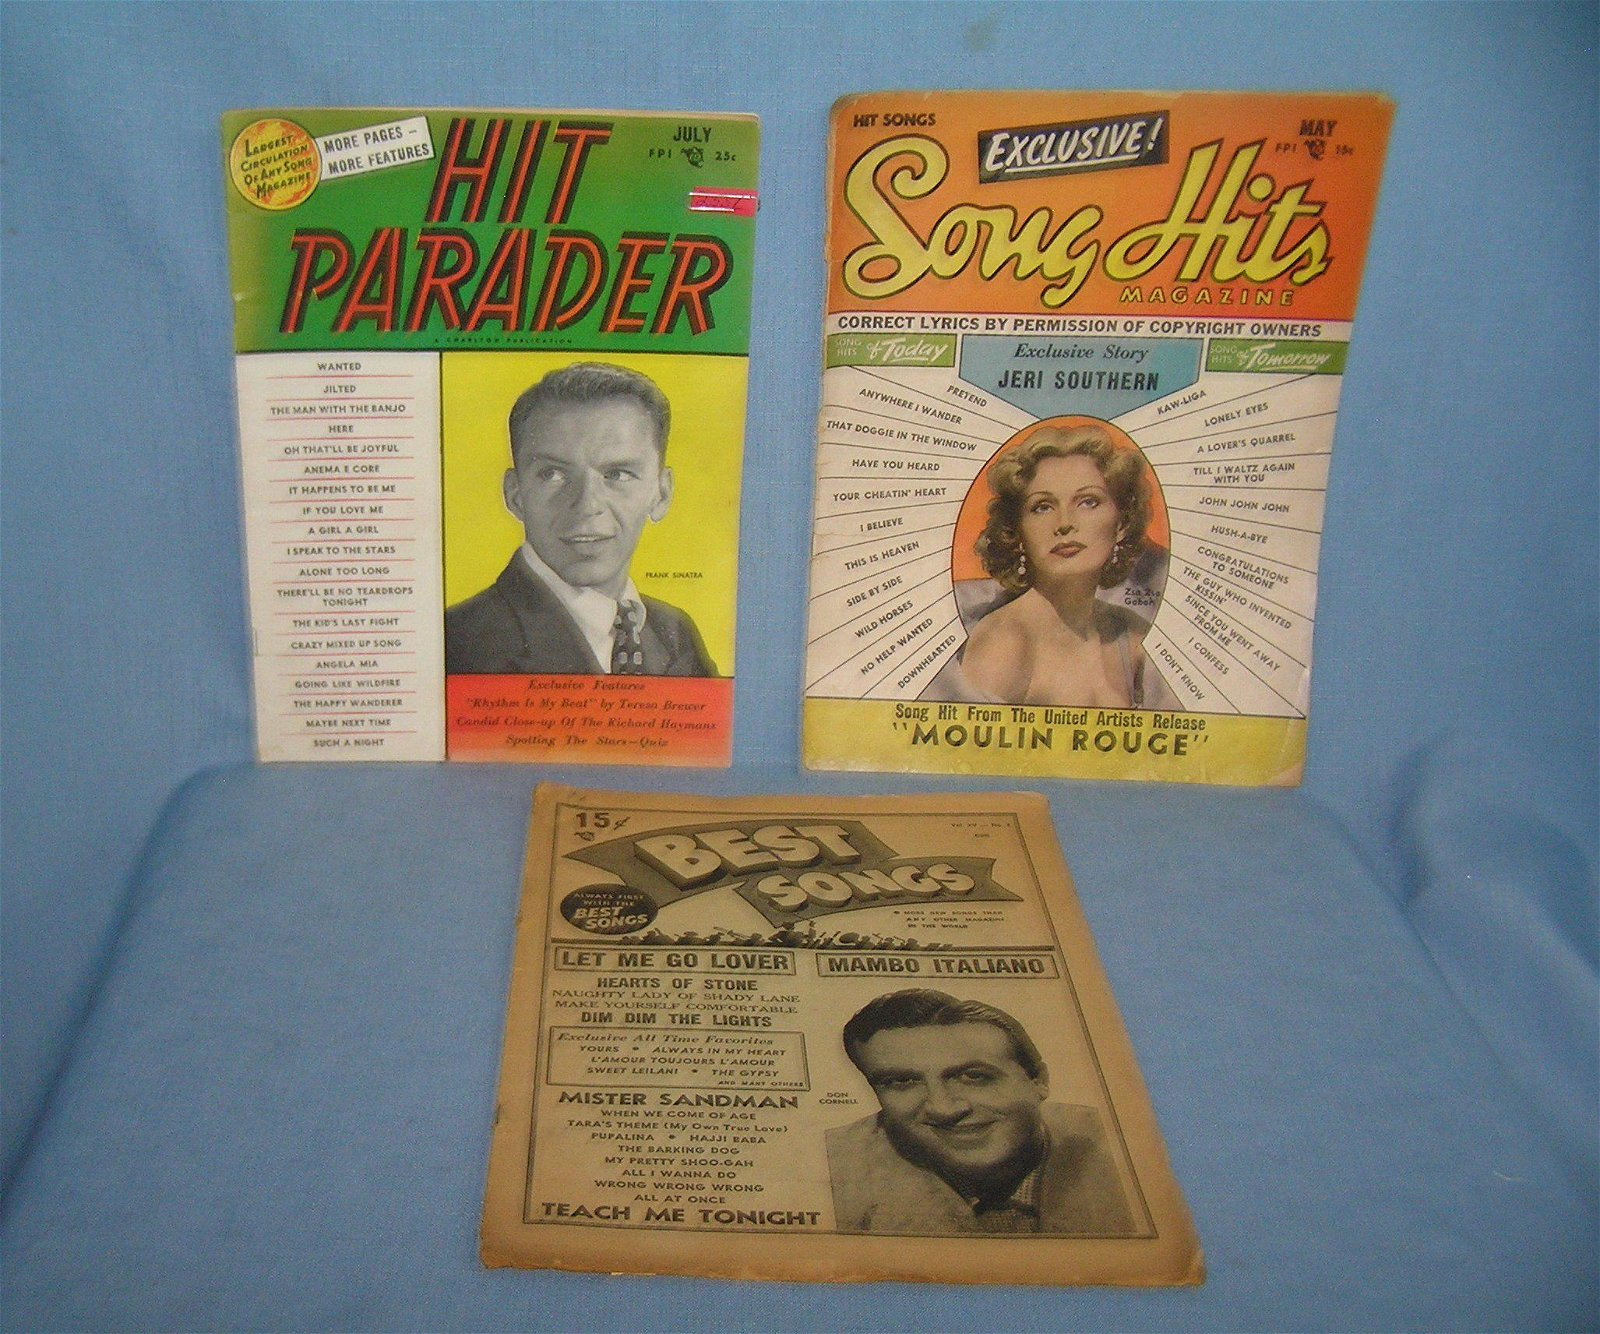 Group of vintage music magazines includes Hit Parade